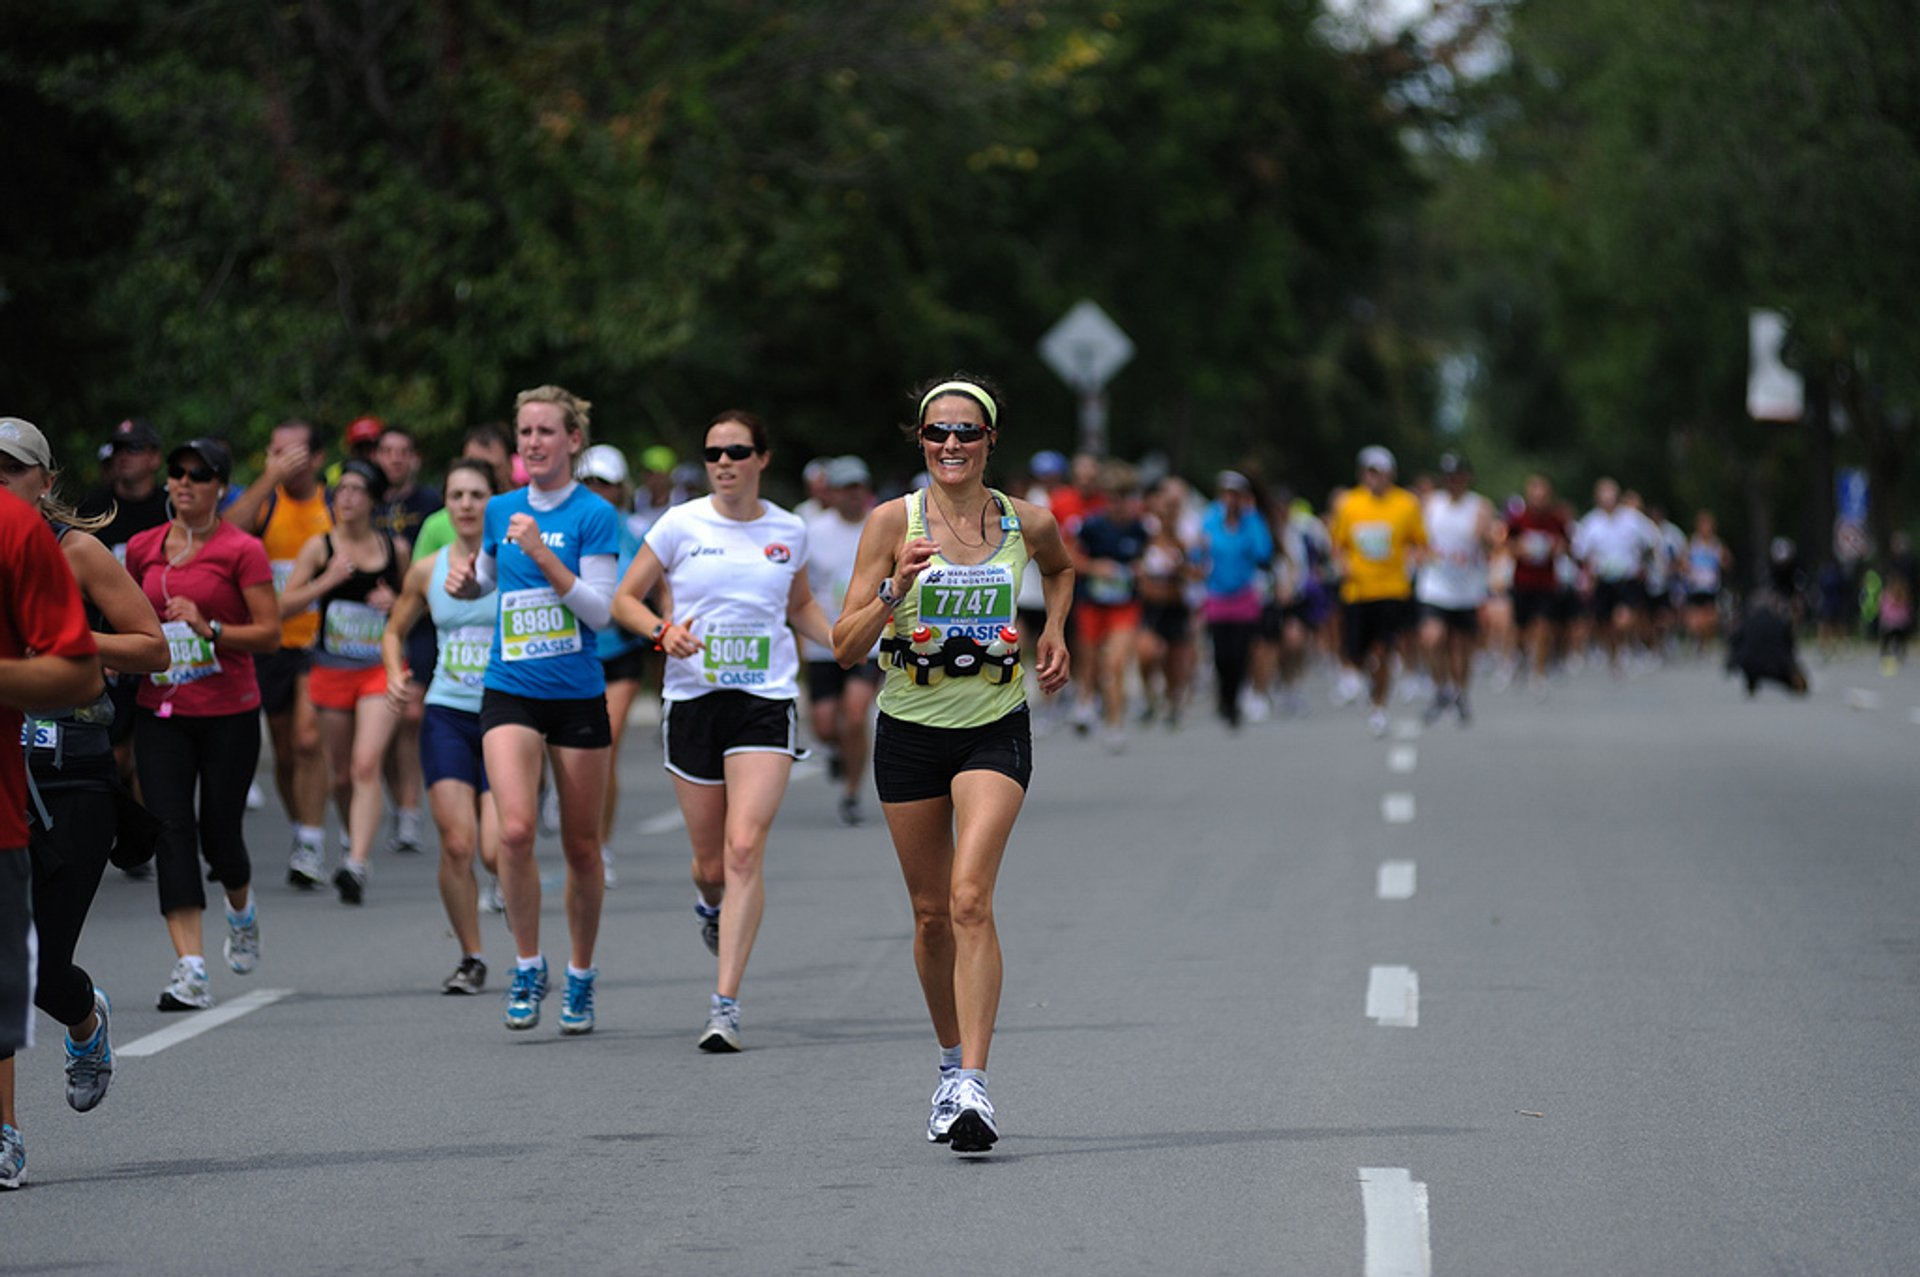 Montreal Rock 'n' Roll Oasis Marathon in Montreal 2020 - Best Time